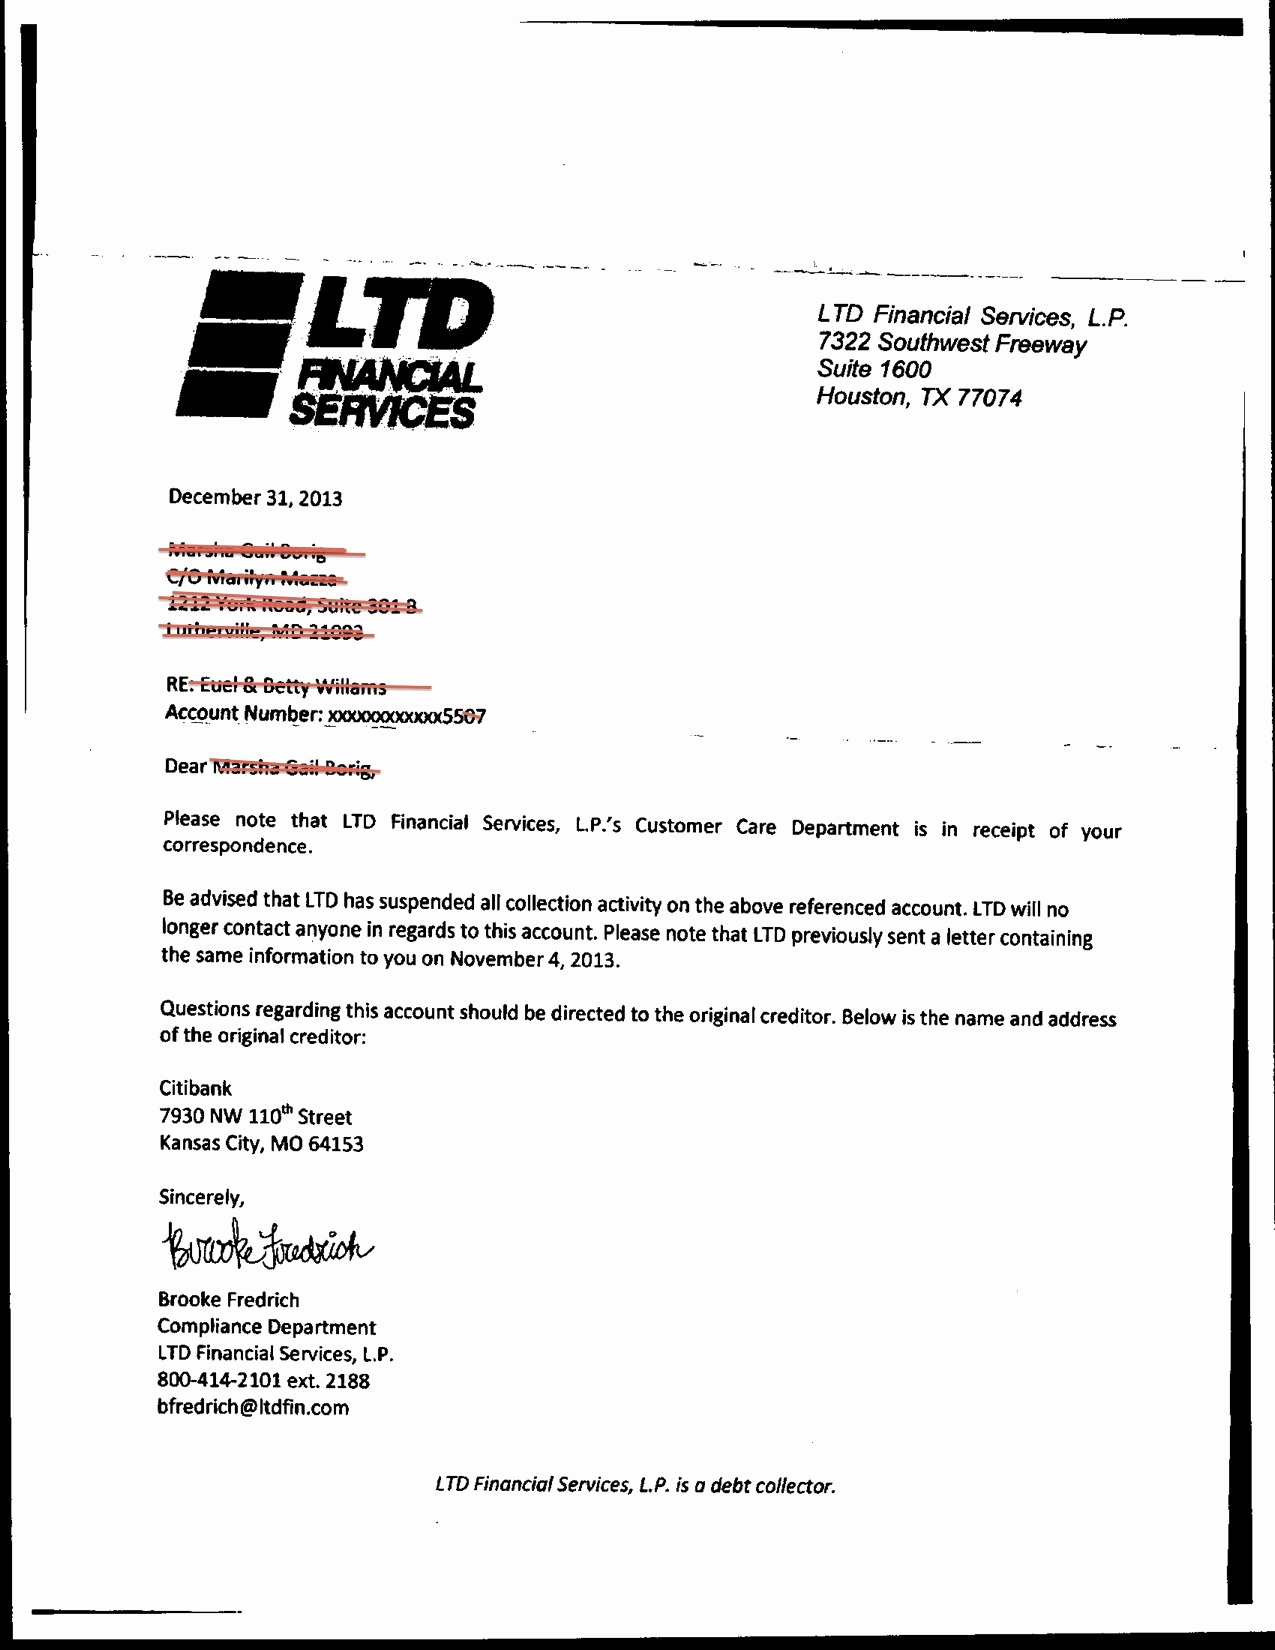 Debt Validation Letter Template New Example Letters for Debt Settlement Validation & Credit